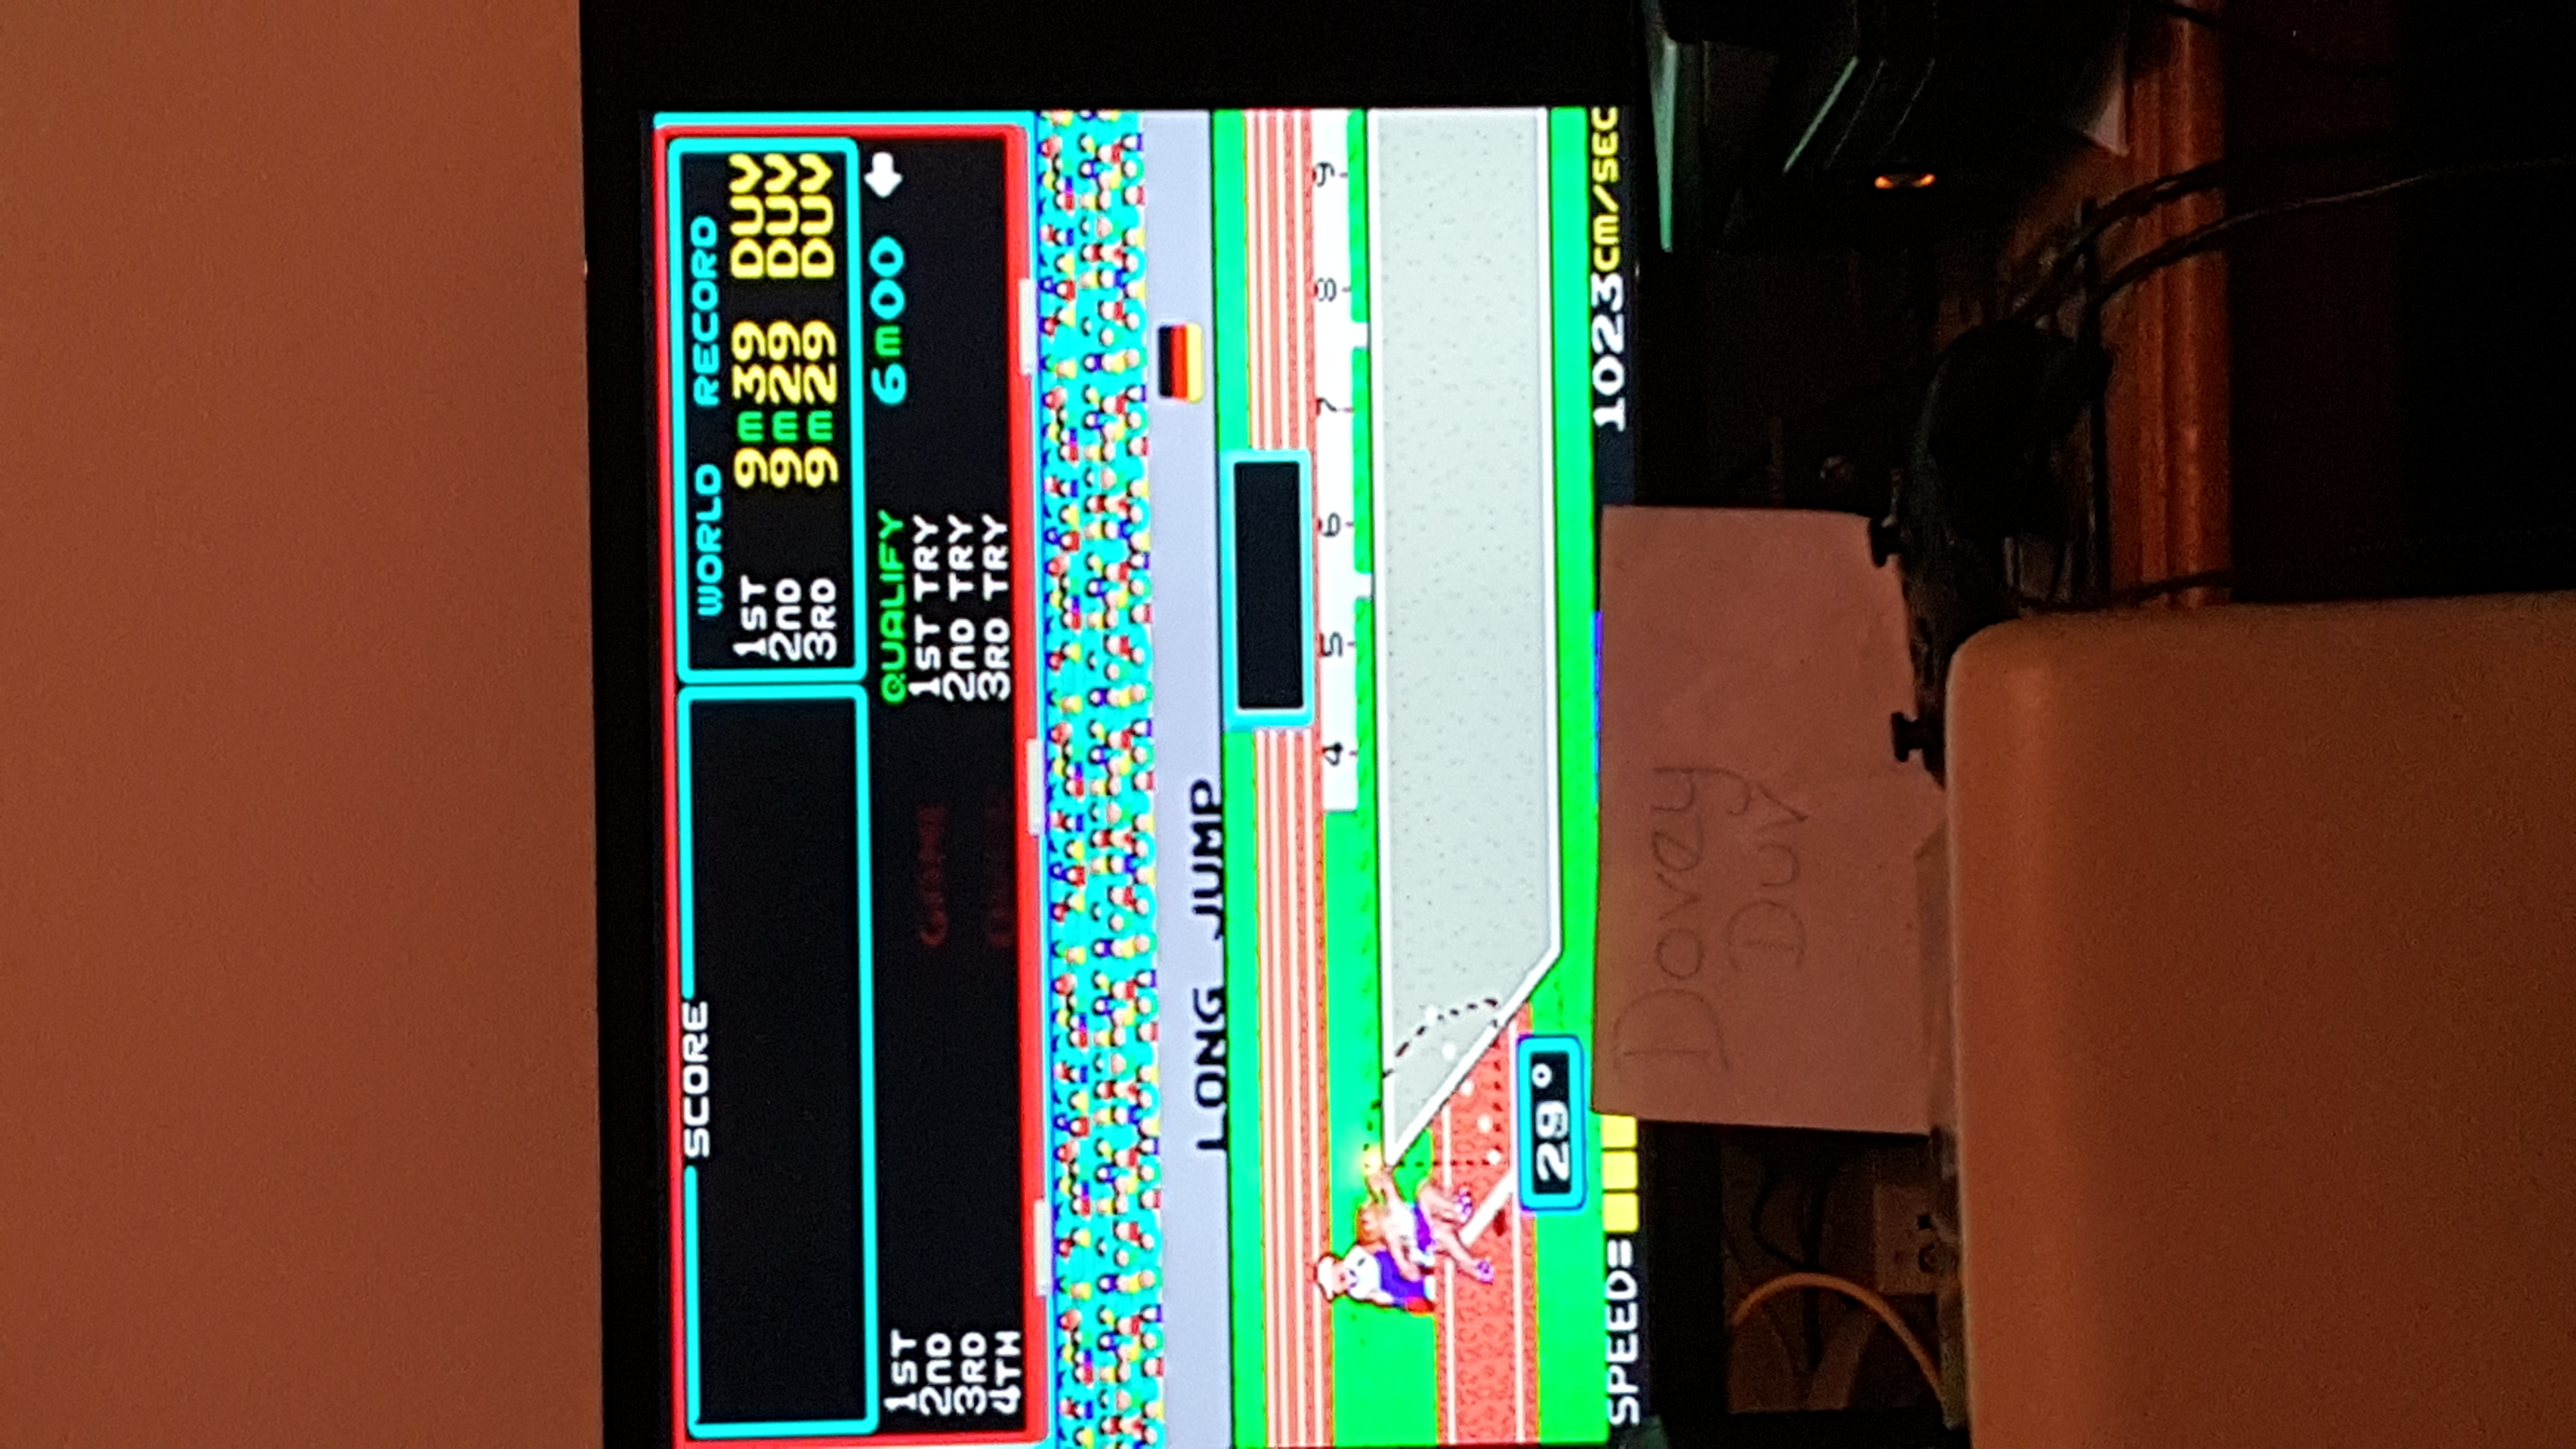 dovey: Track & Field [Marathon: Continuing Allowed After 1st Loop Ends] (Arcade Emulated / M.A.M.E.) 147,340 points on 2016-06-26 14:47:24